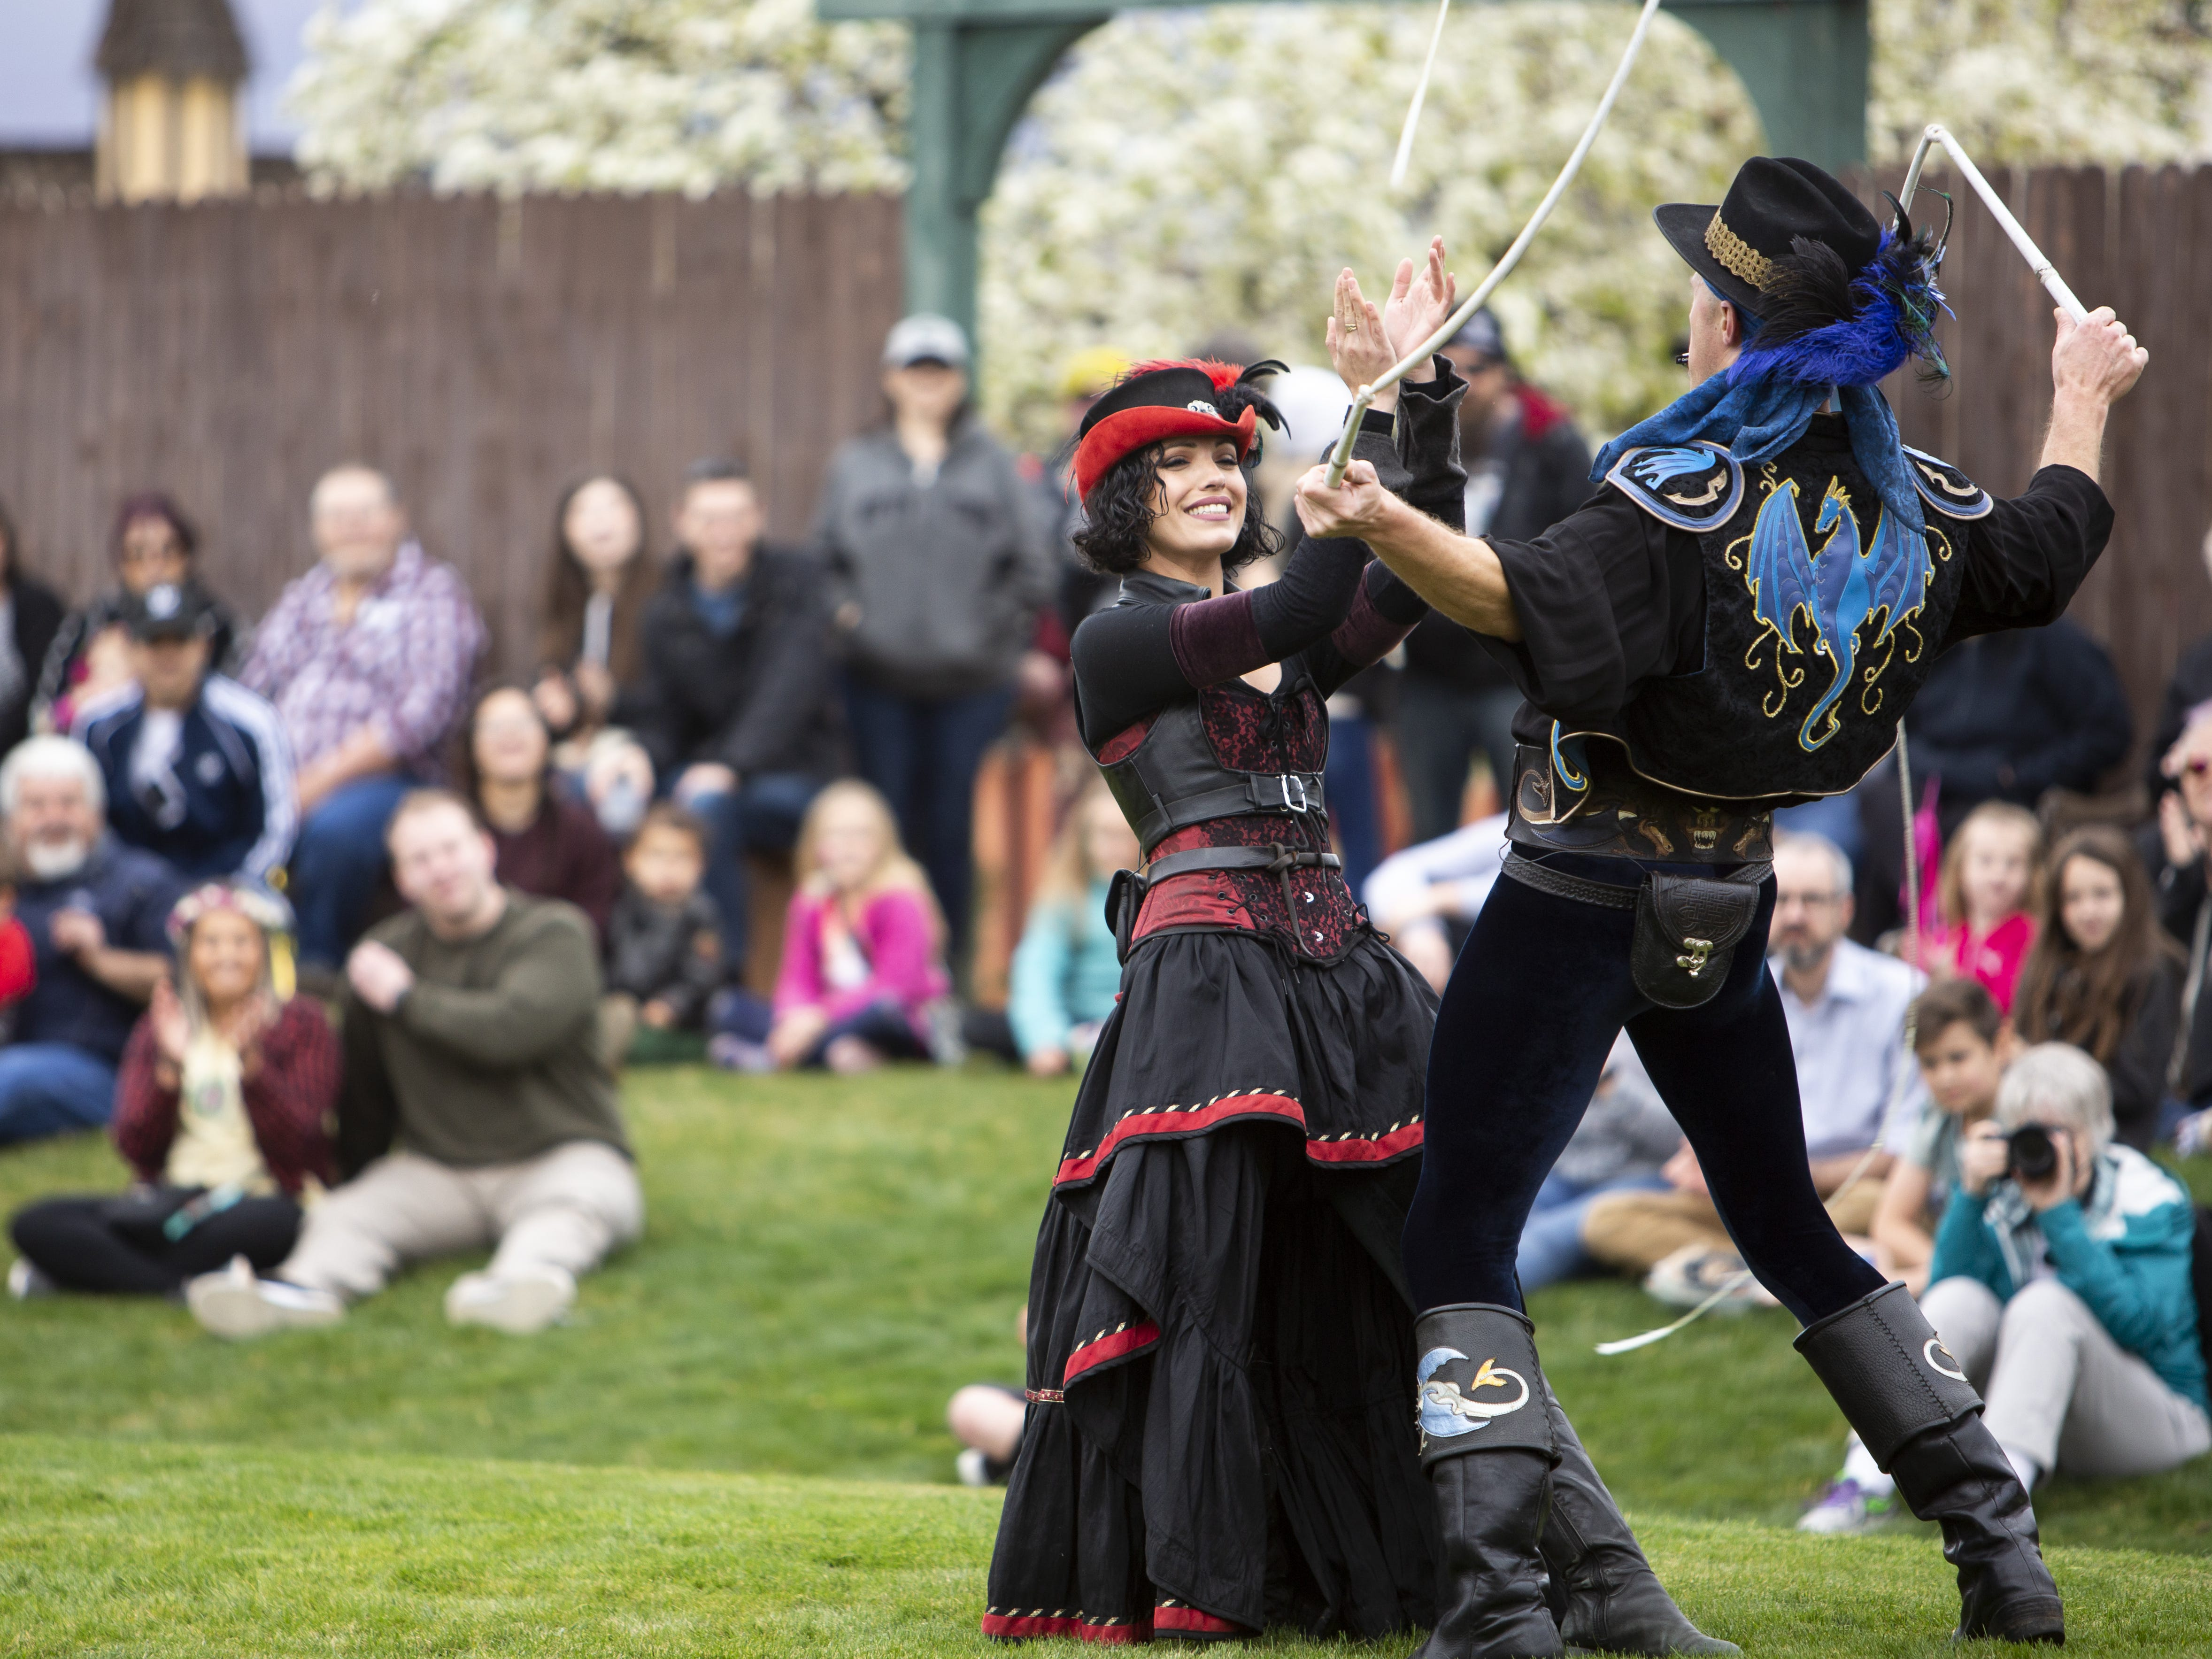 "Adam ""Crack"" Winrich and his wife Dakota Winrich, who goes by the stage name Esmeralda, perform together at the Arizona Renaissance Festival 2019 on Feb. 9, 2019 in Gold Canyon, Ariz."